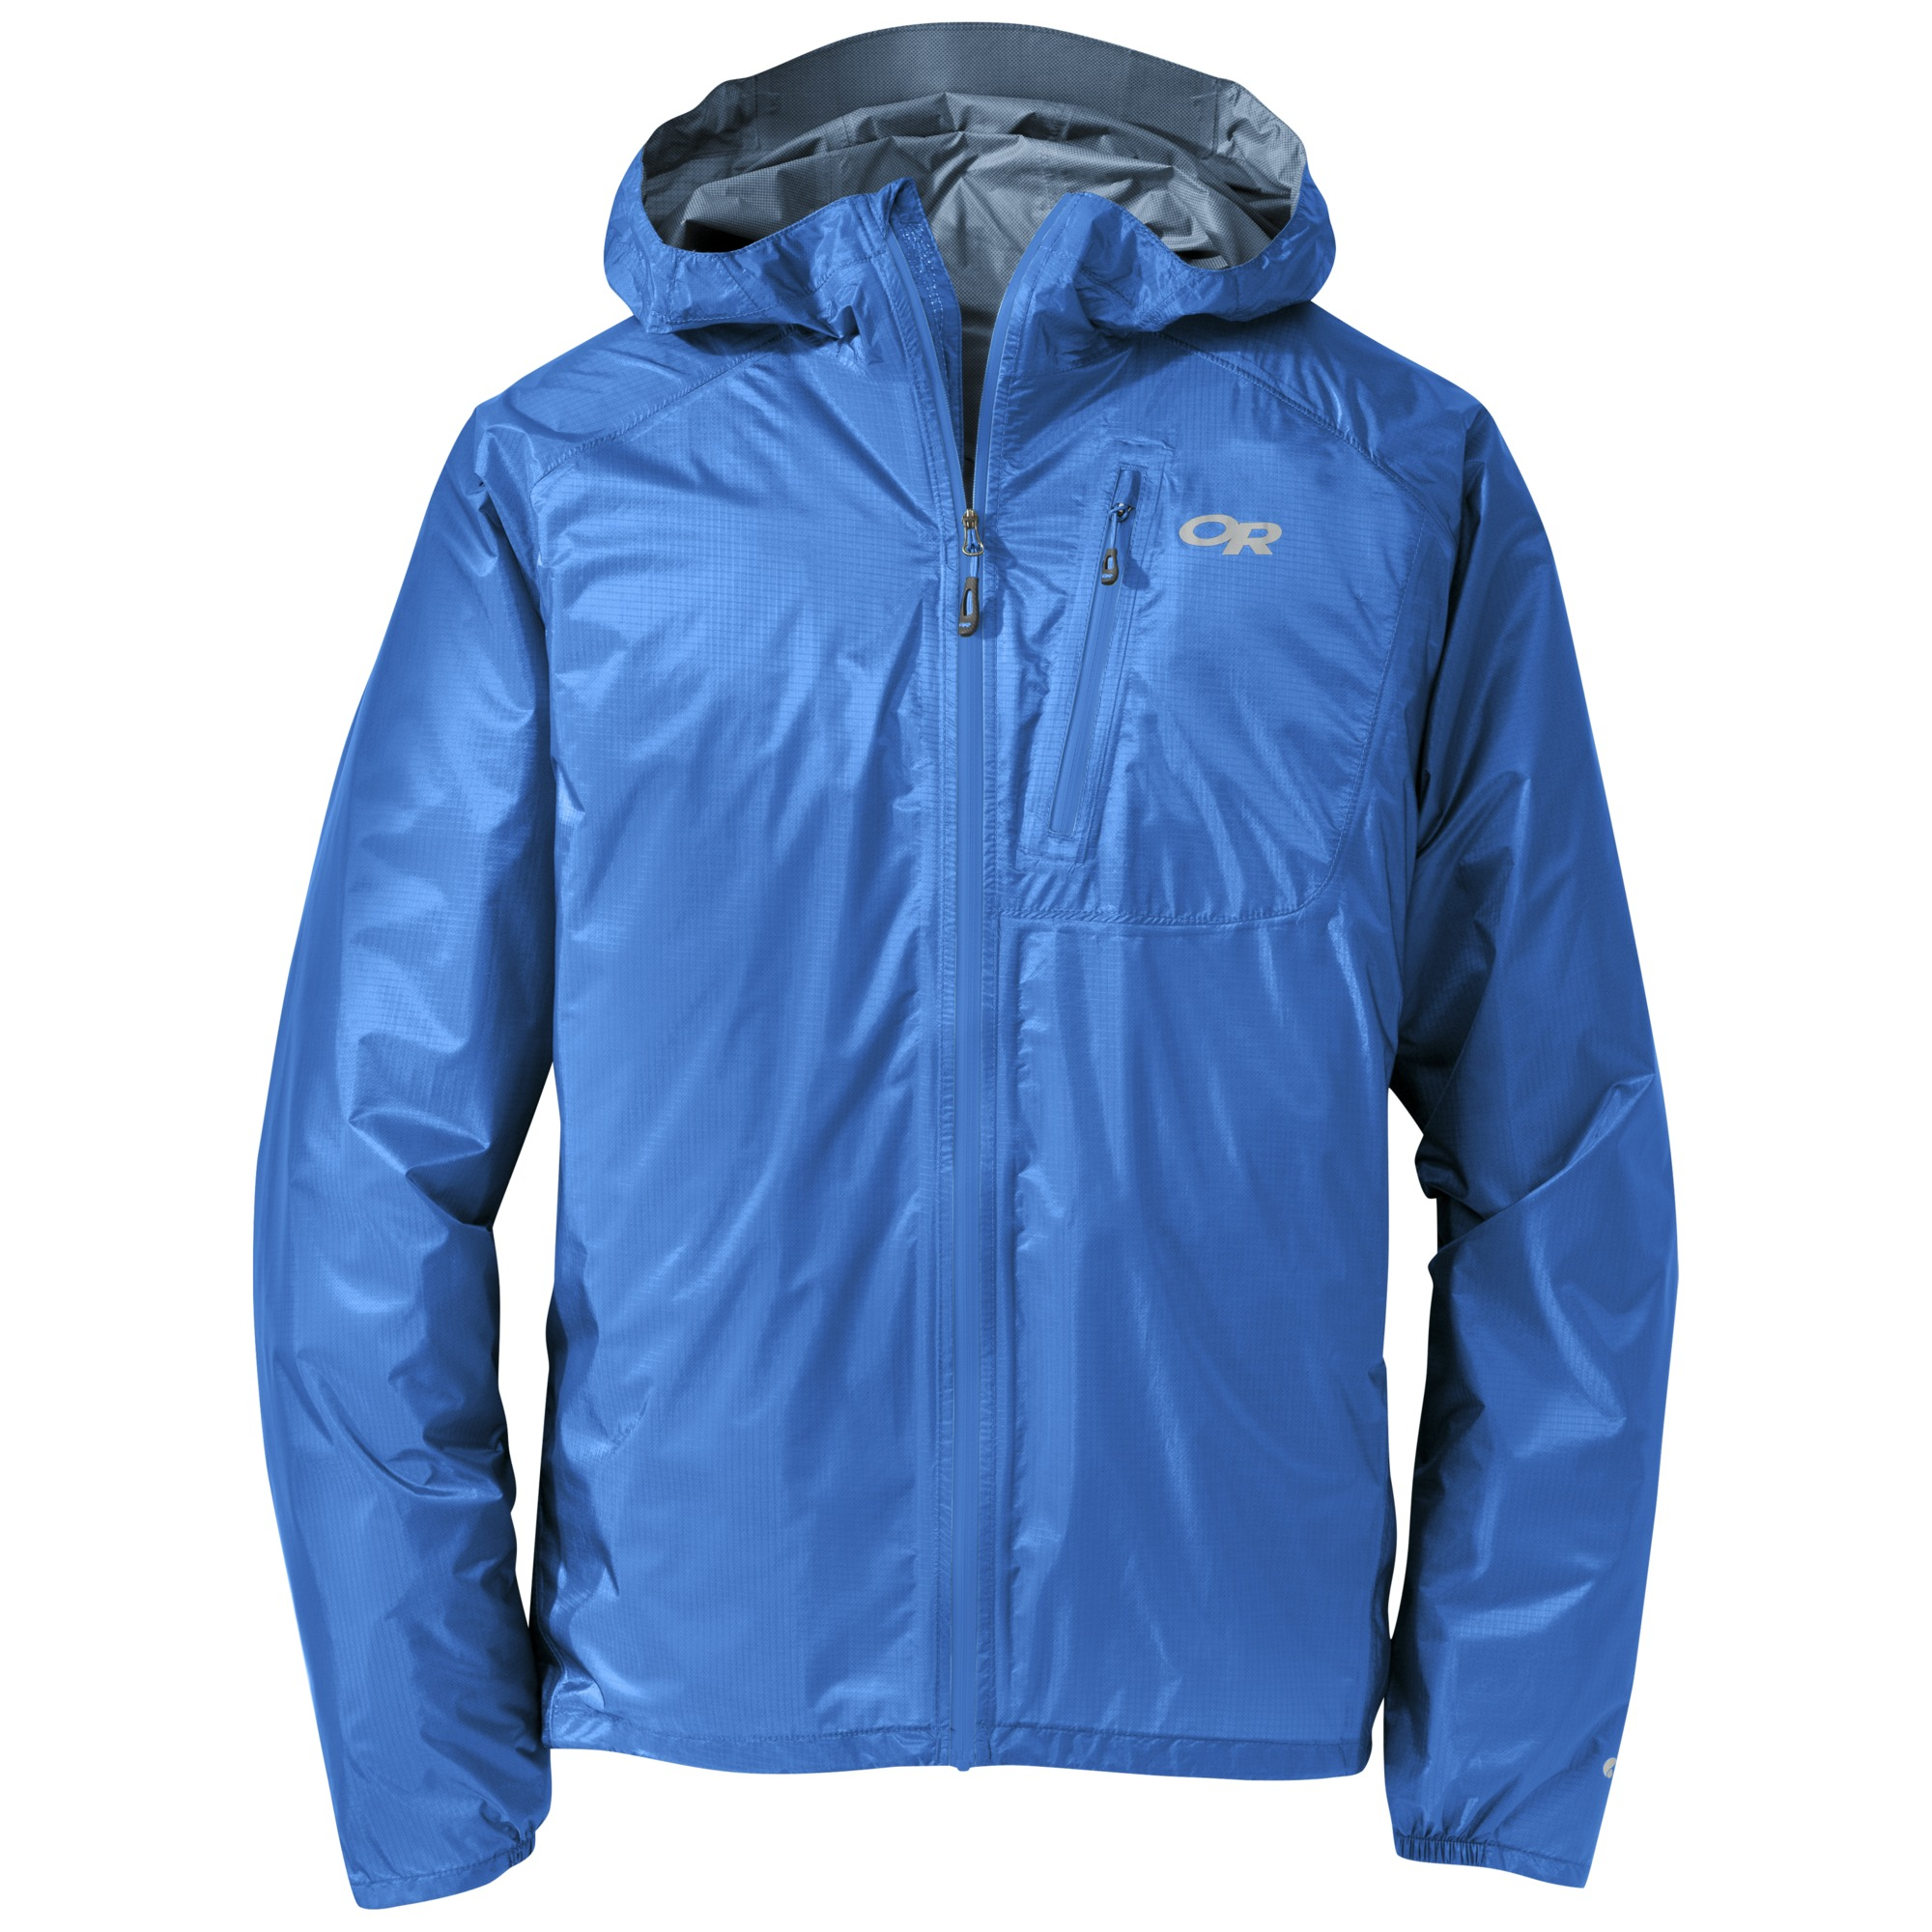 new styles 875e5 c3ac1 Men's Helium II Jacket - glacier | Outdoor Research